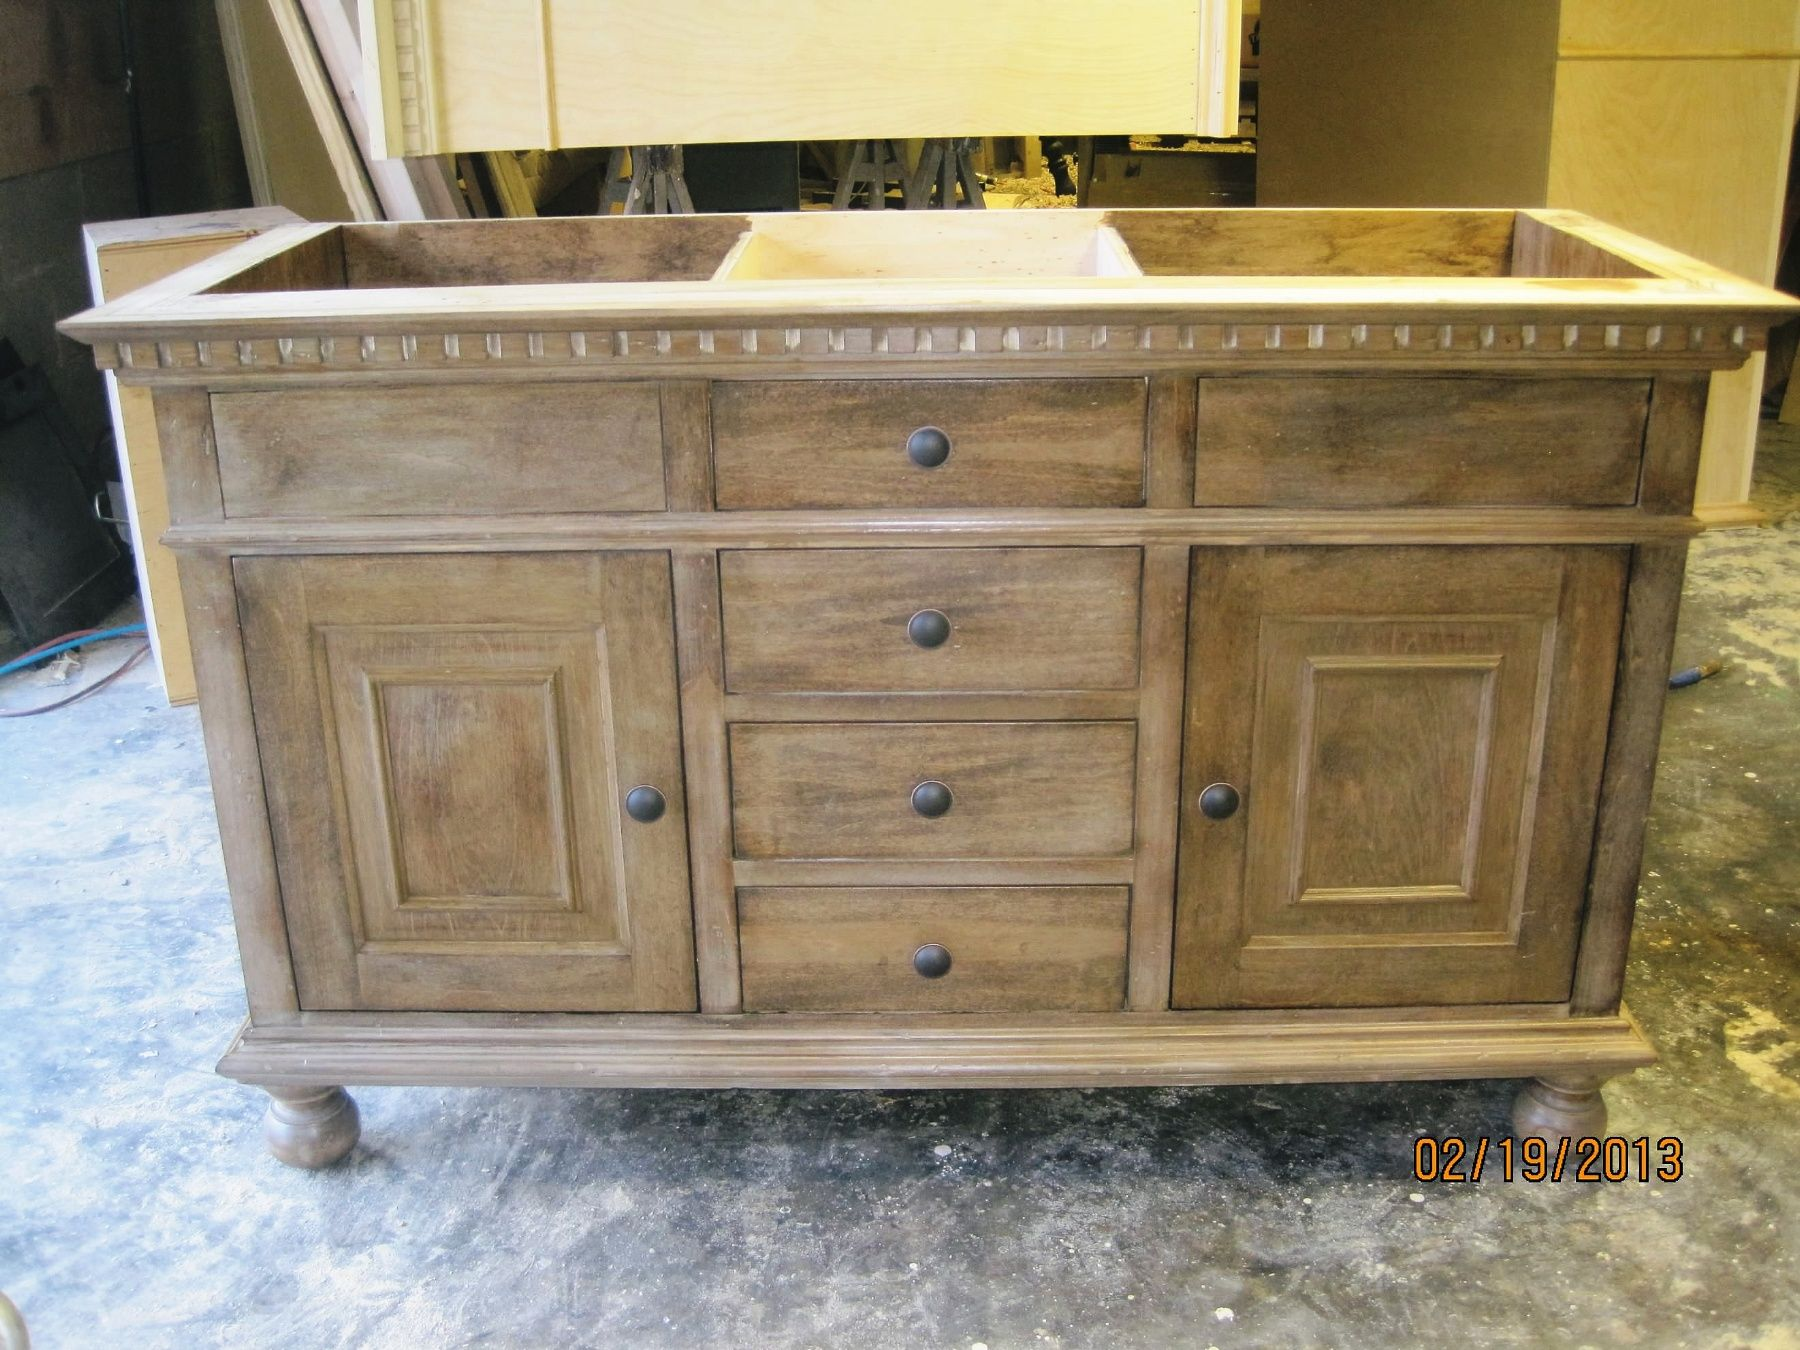 Custom Bathroom Vanities York Region st james double sink vanity in antique natural finish | el viejo